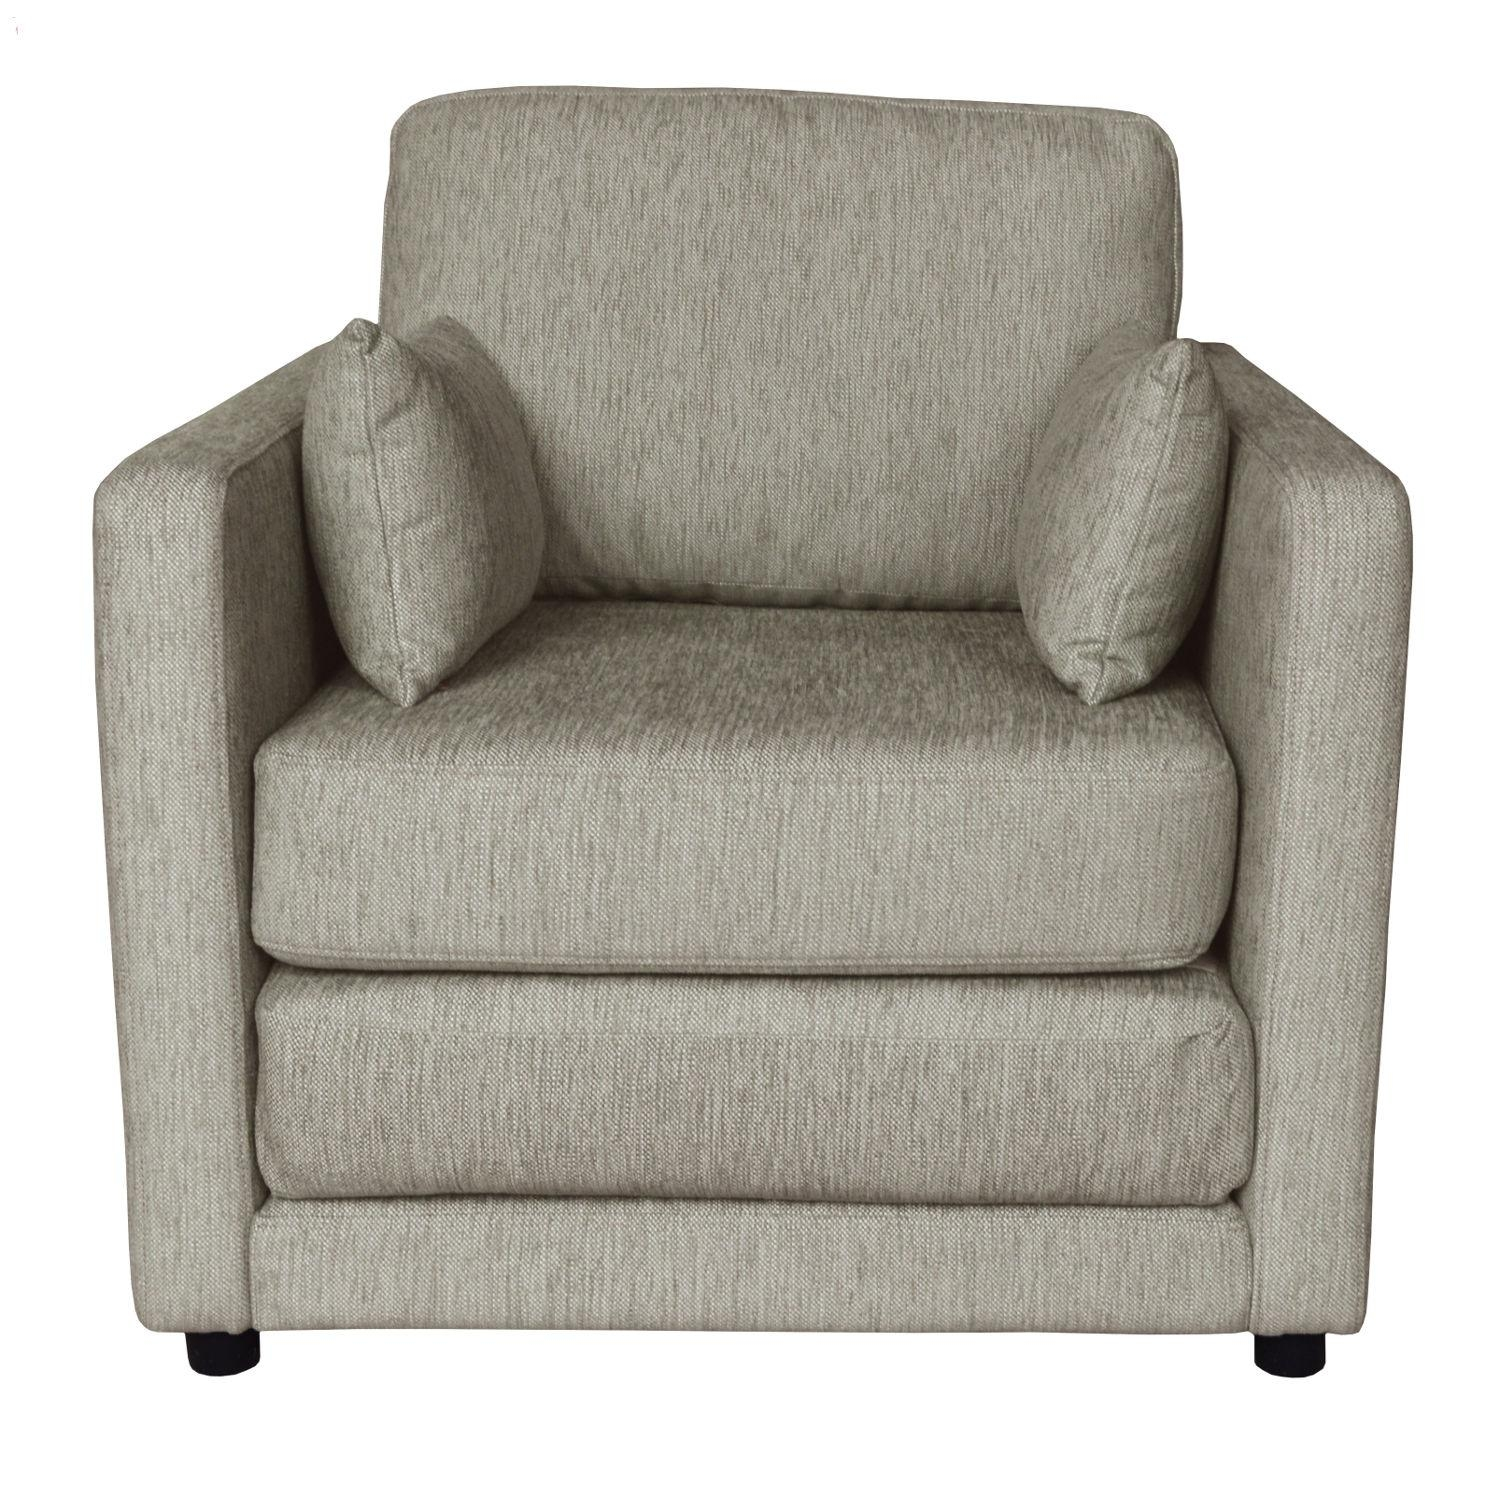 Chair Milly Grey Print Barrel Chair Armchair Accent Home Furniture Throughout Sofa Arm Chairs (View 4 of 20)